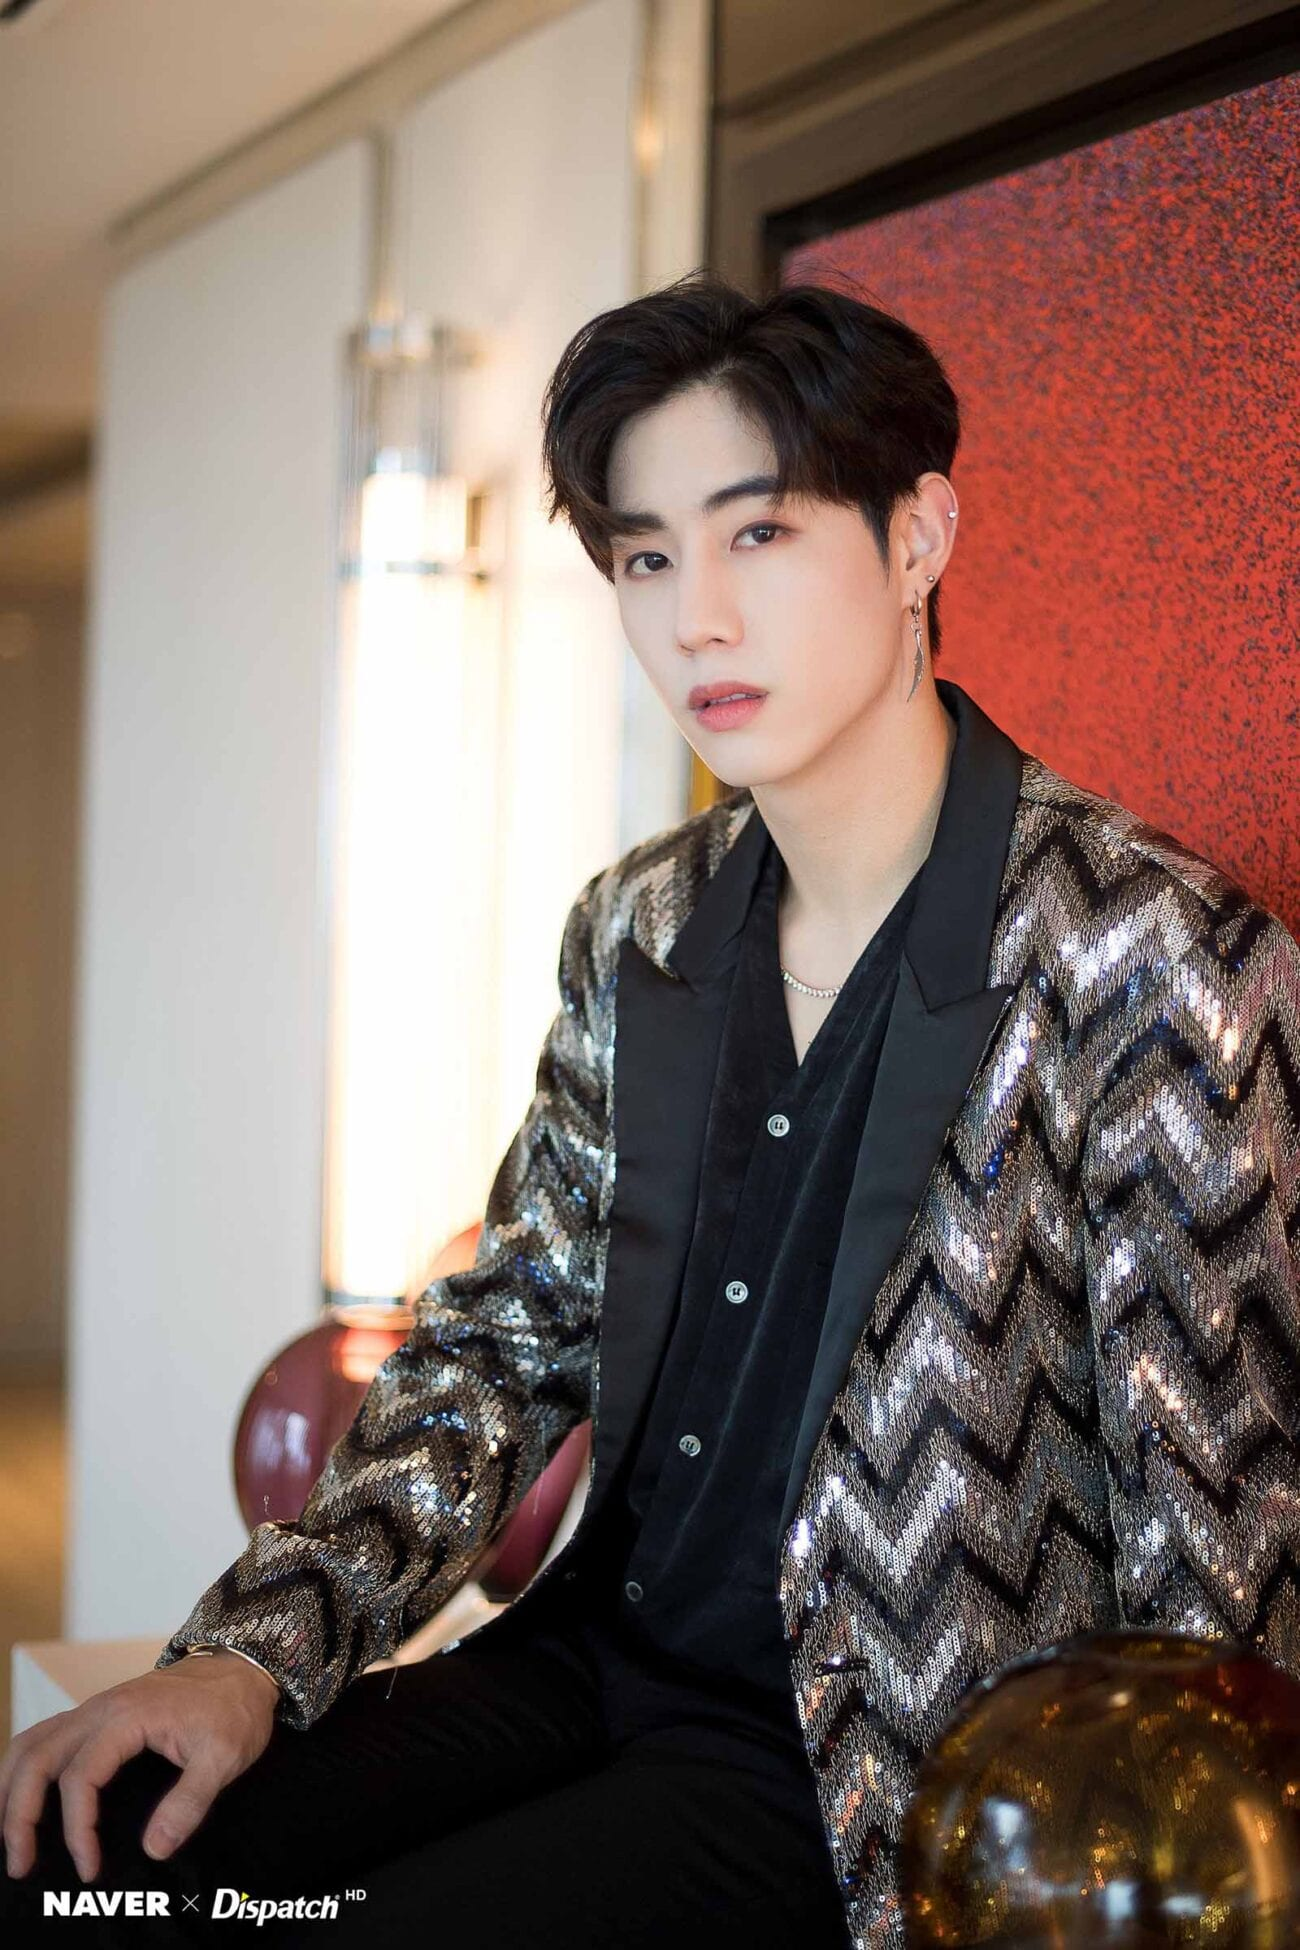 We couldn't image a GOT7 without Mark, but it's by complete chance Mark even became a K-pop idol. Learn about his journey to GOT7.